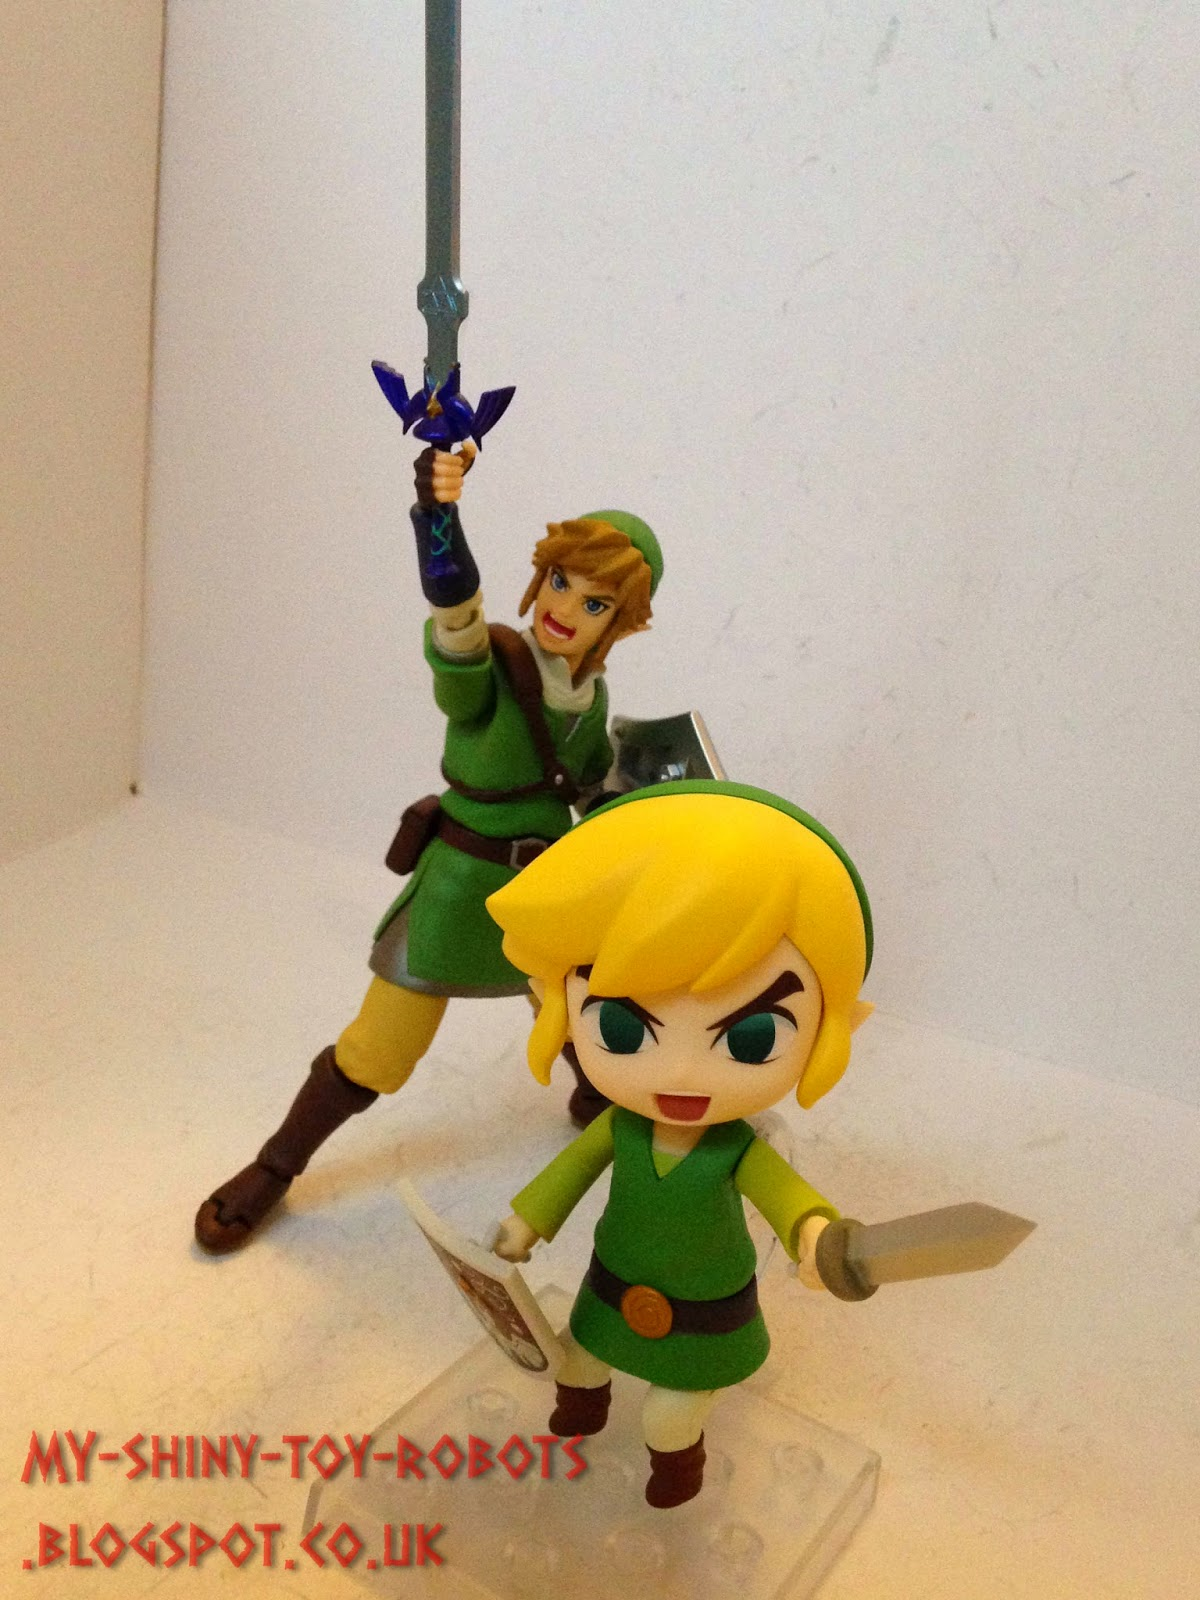 Link with his Figma brother